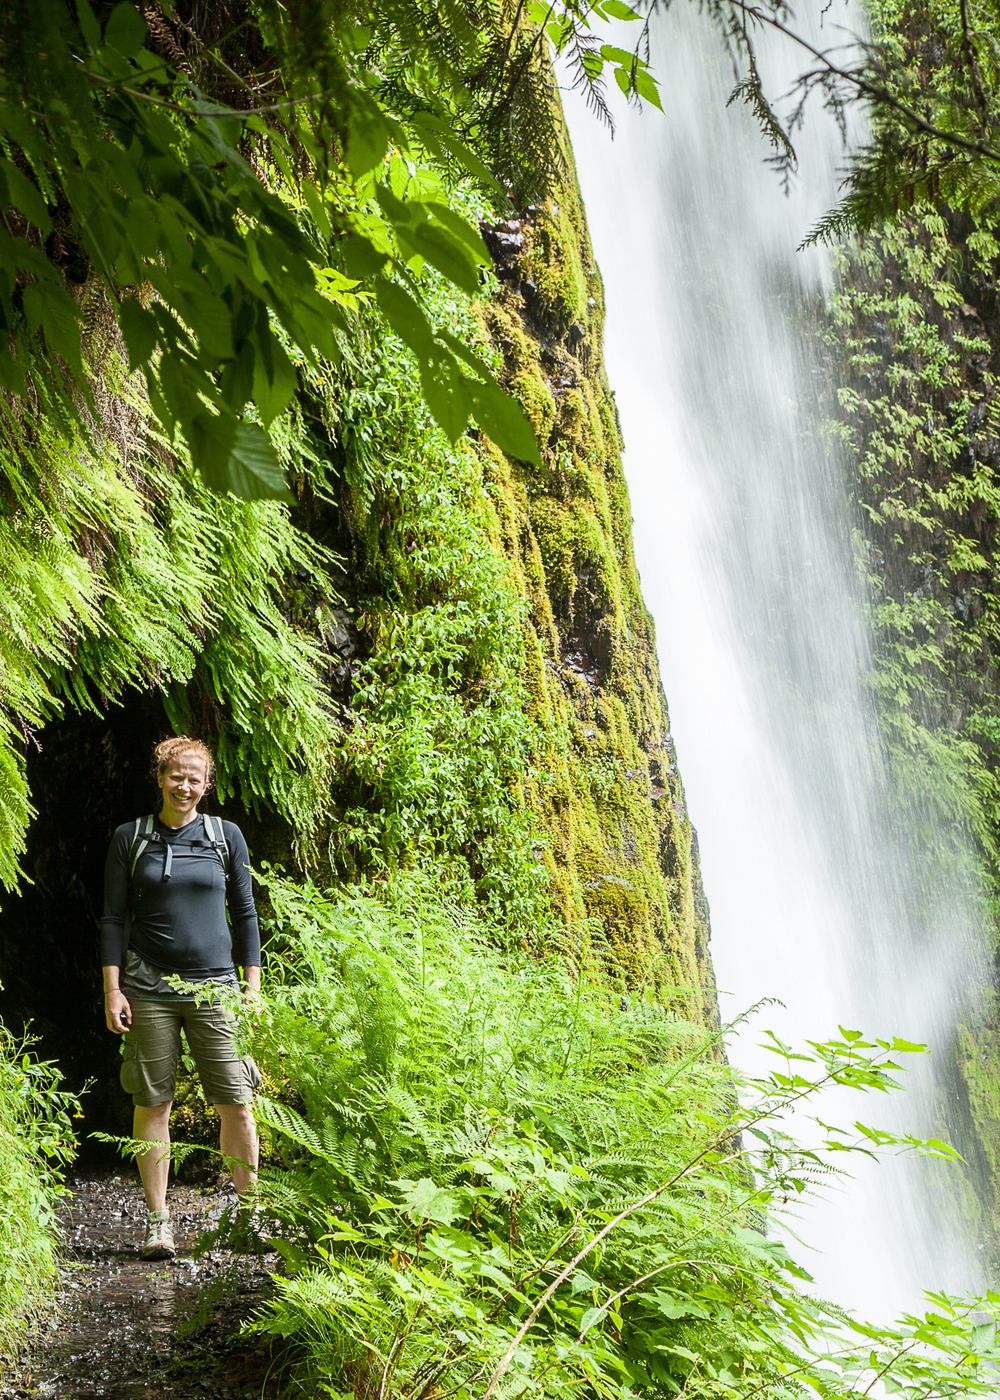 Justine at the entrance to the tunnel behind Tunnel Falls. As you can see, there's a lot of water going over the waterfall.